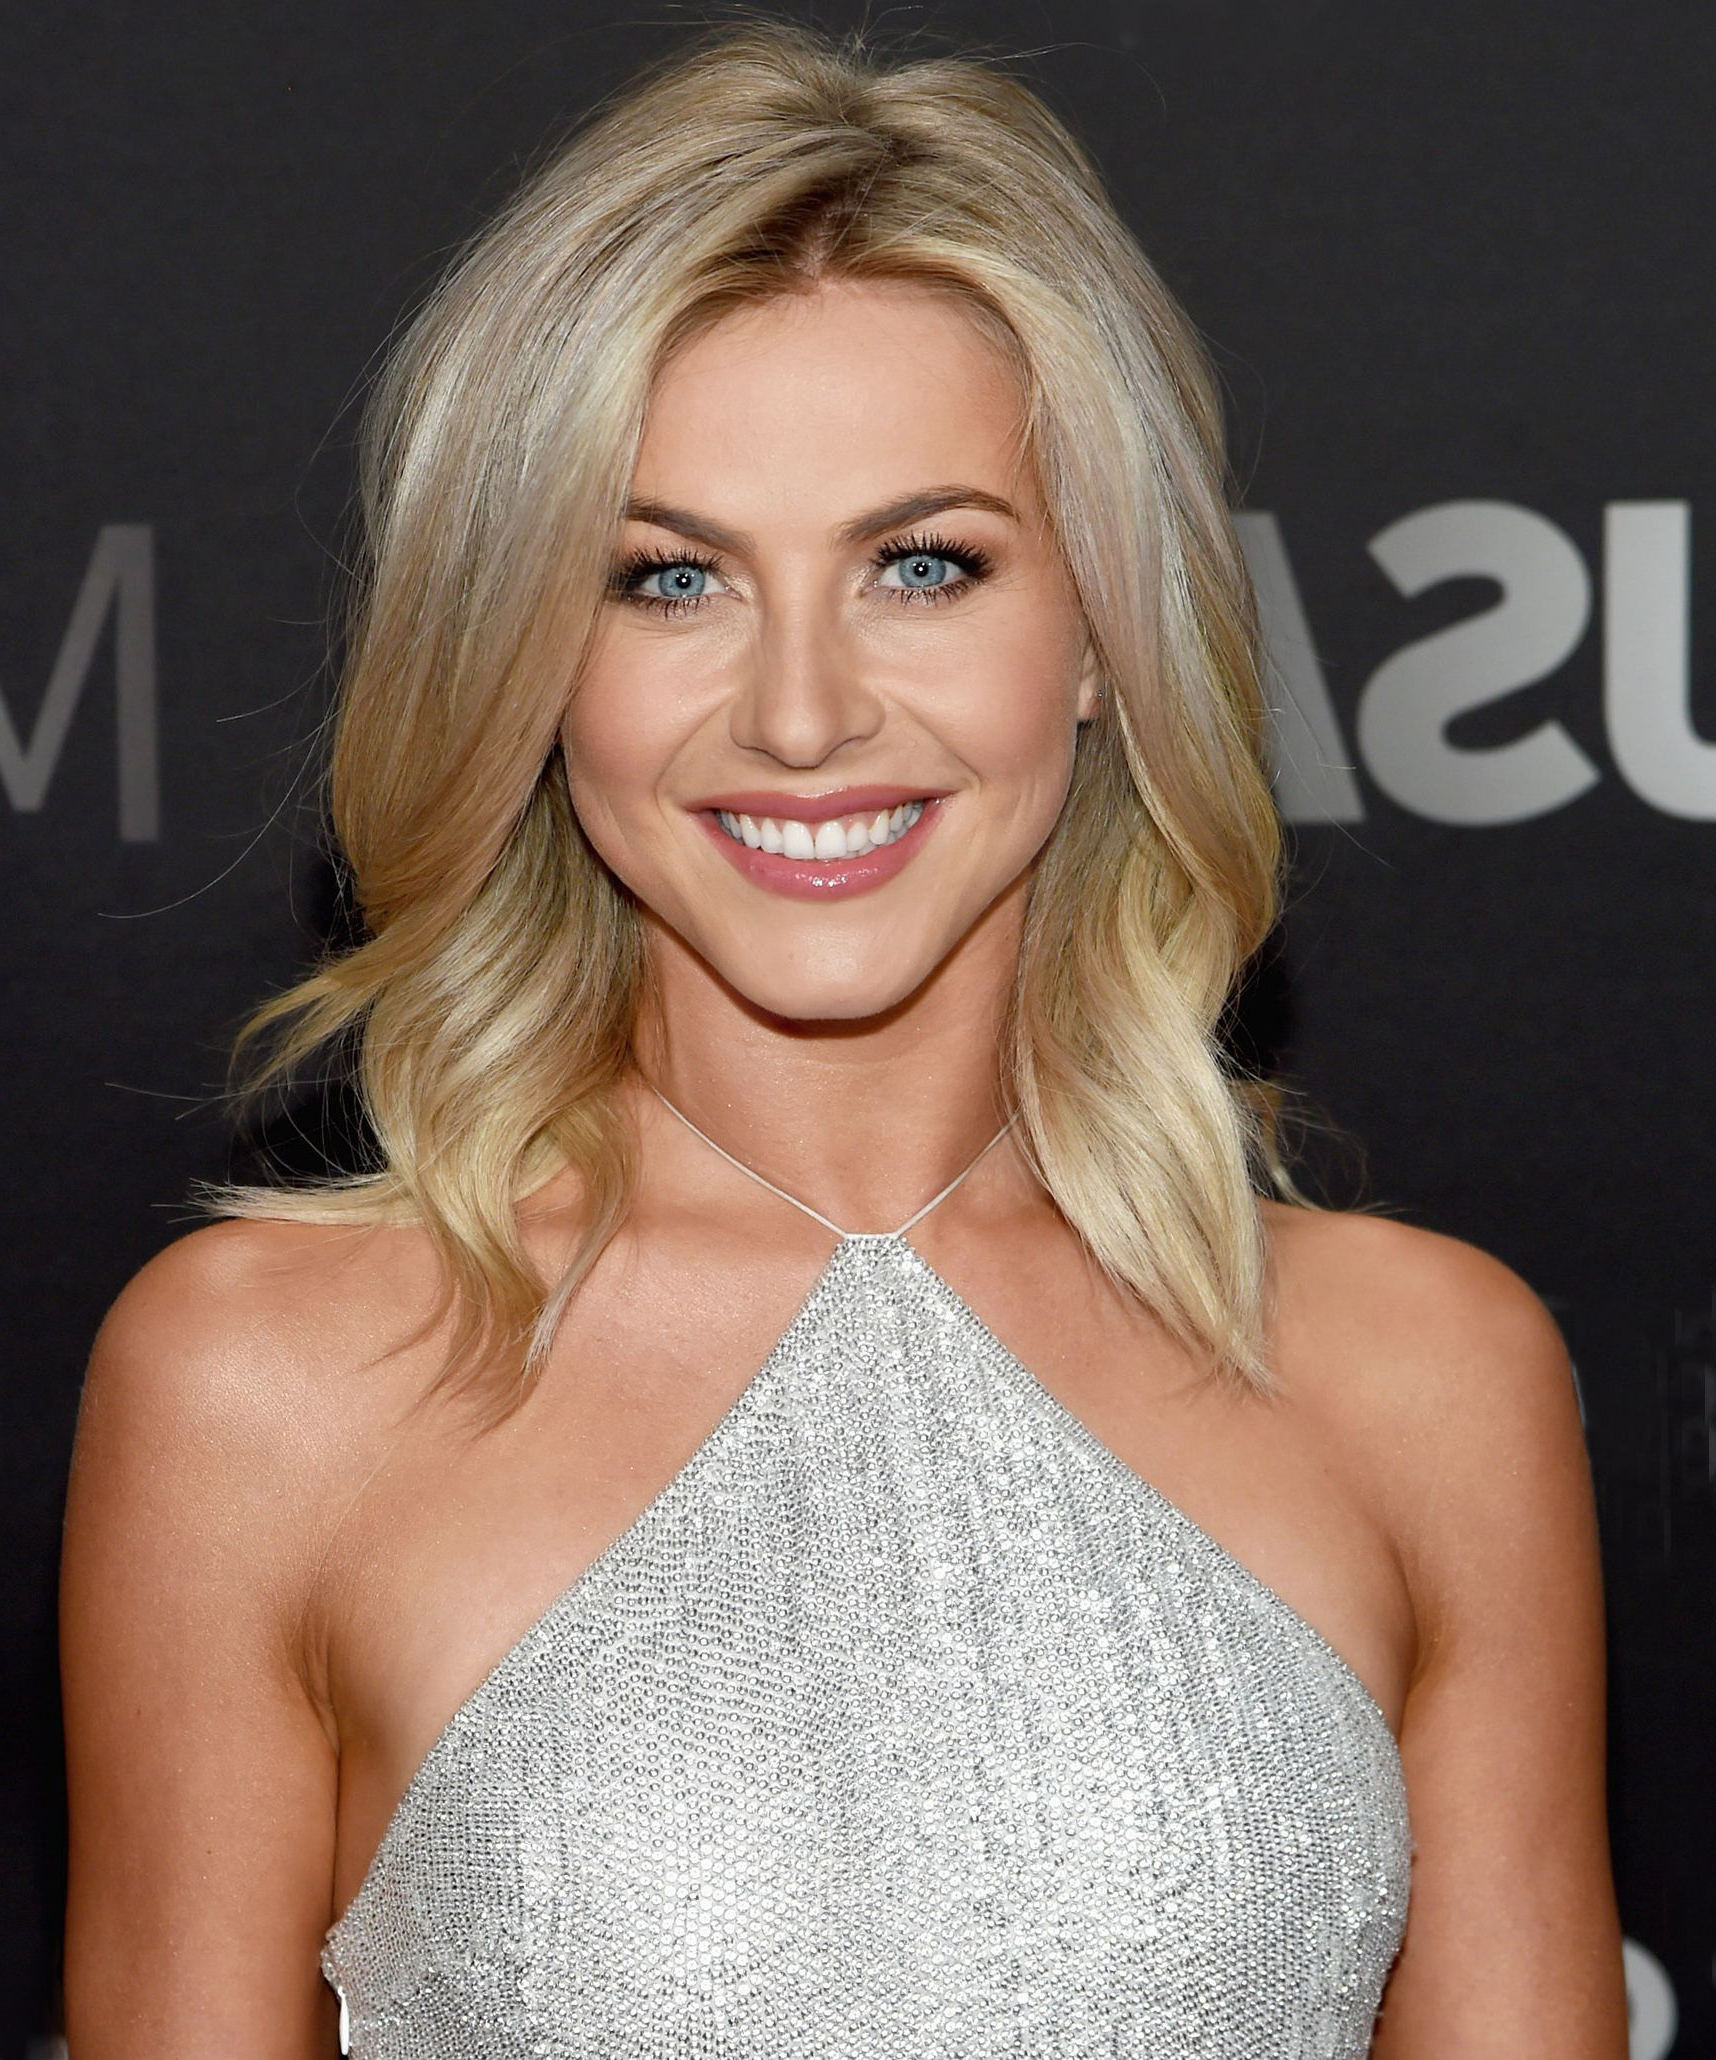 Did Julianne Hough Have Her Best Hair Day Ever? (Gallery 1 of 20)